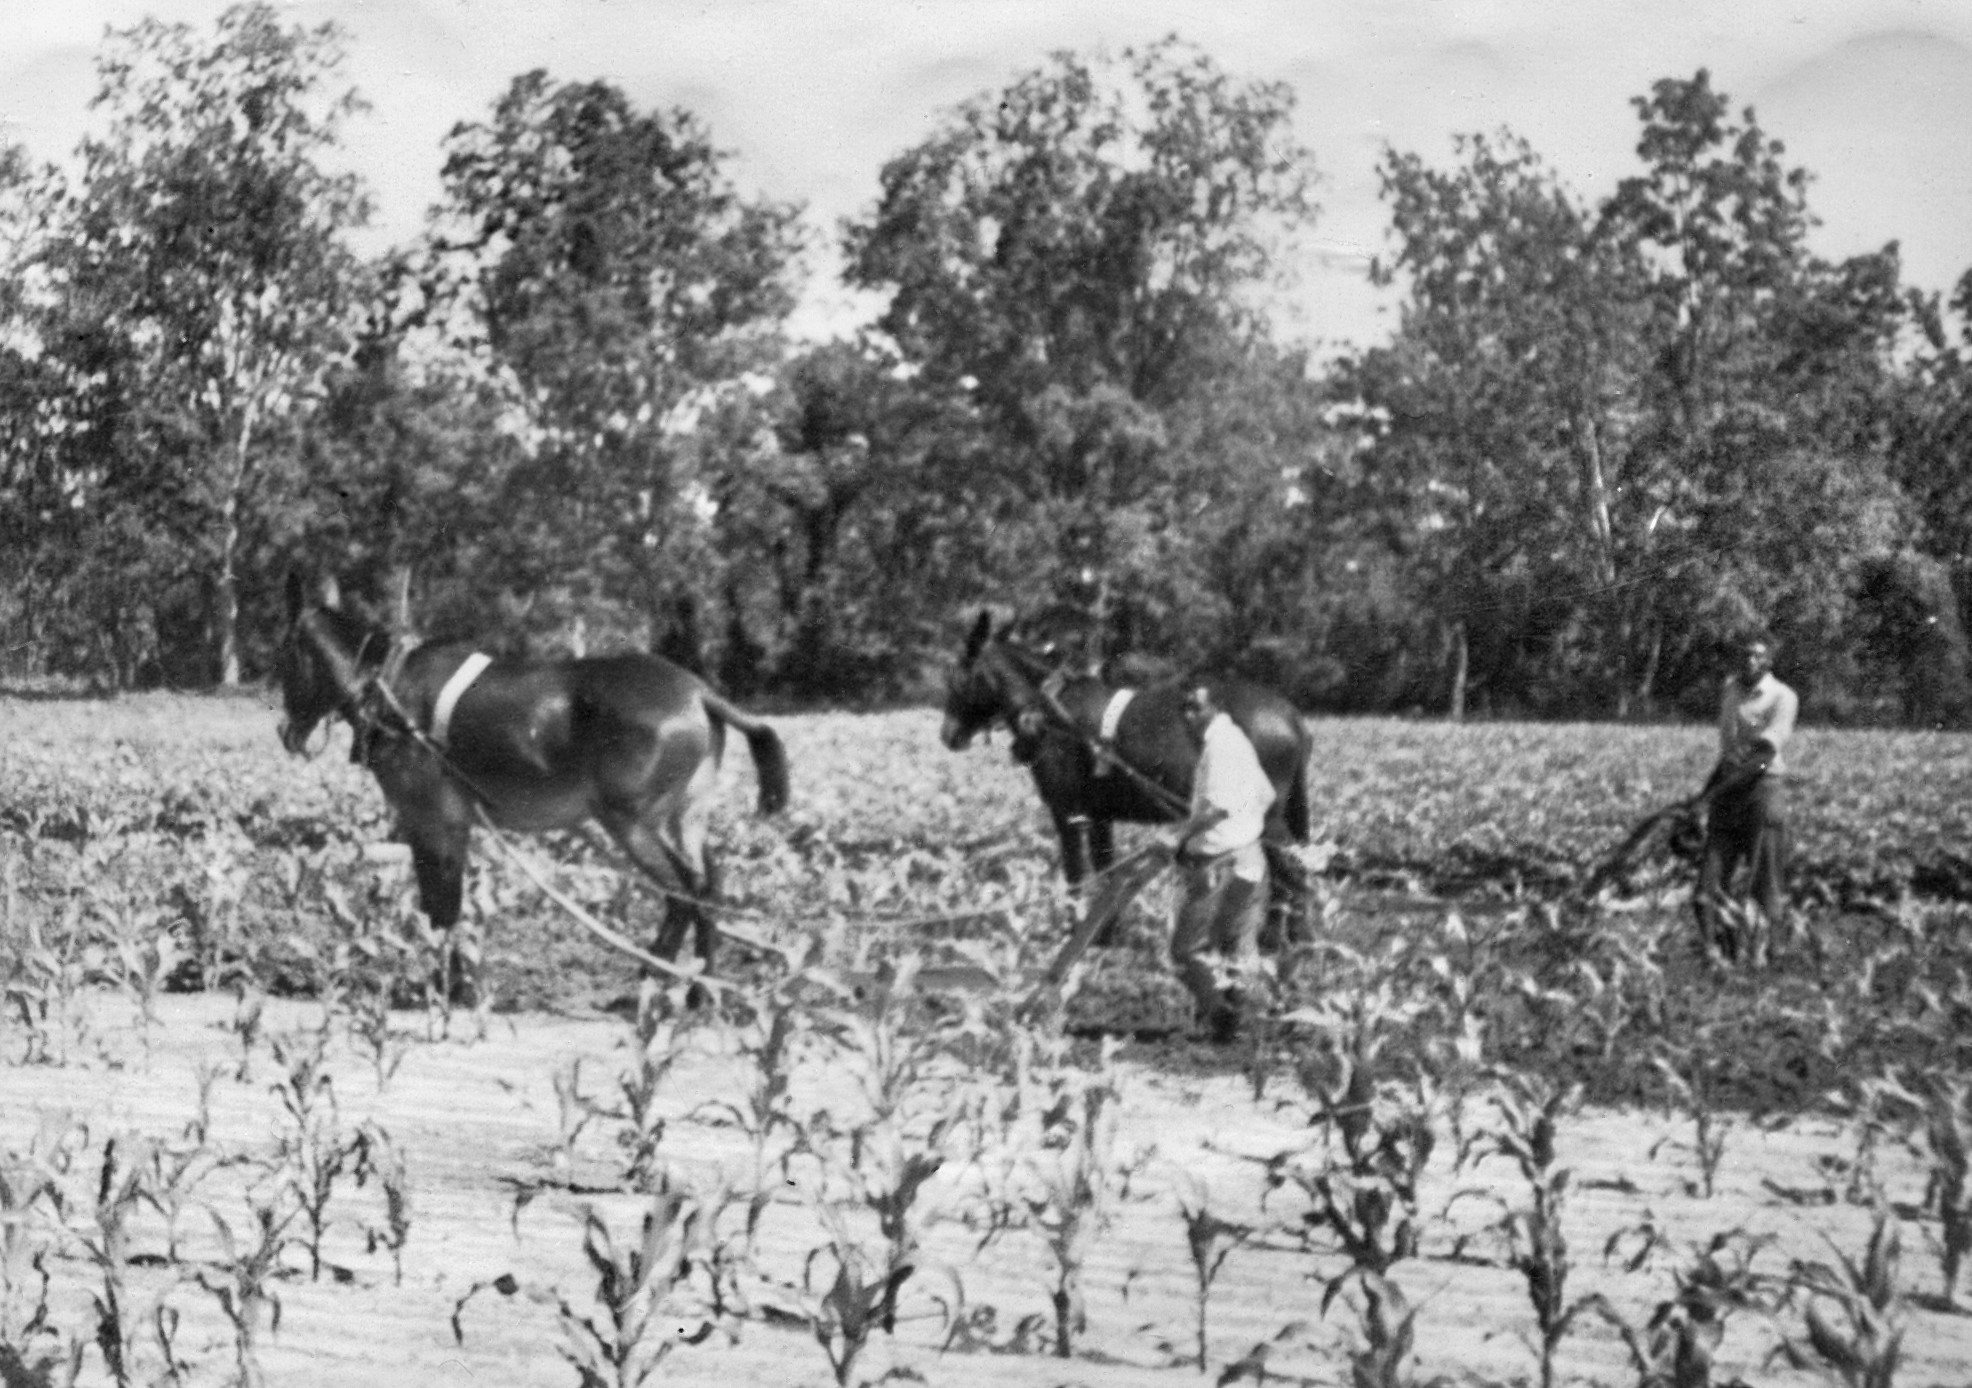 Boone Hall Plantation:  Horses and men working out in the fields